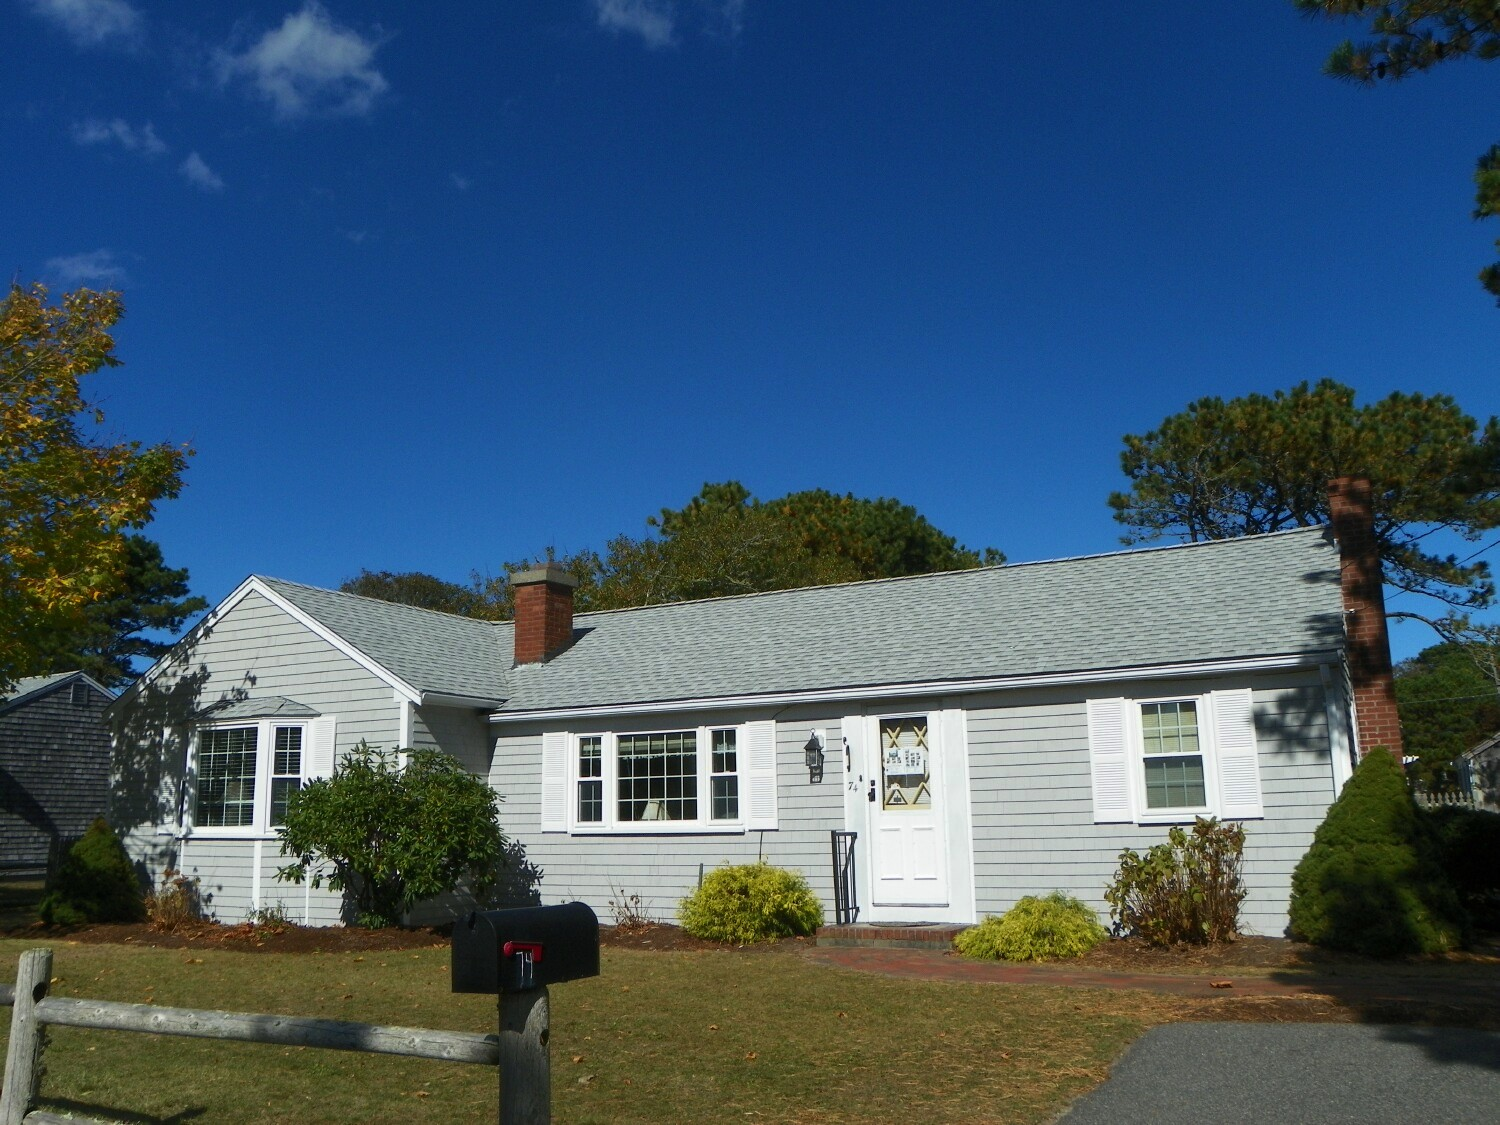 Front of 74 Surfside Rd., West Dennis, MA for sale by Cranberry Real Estate 508-394-1700